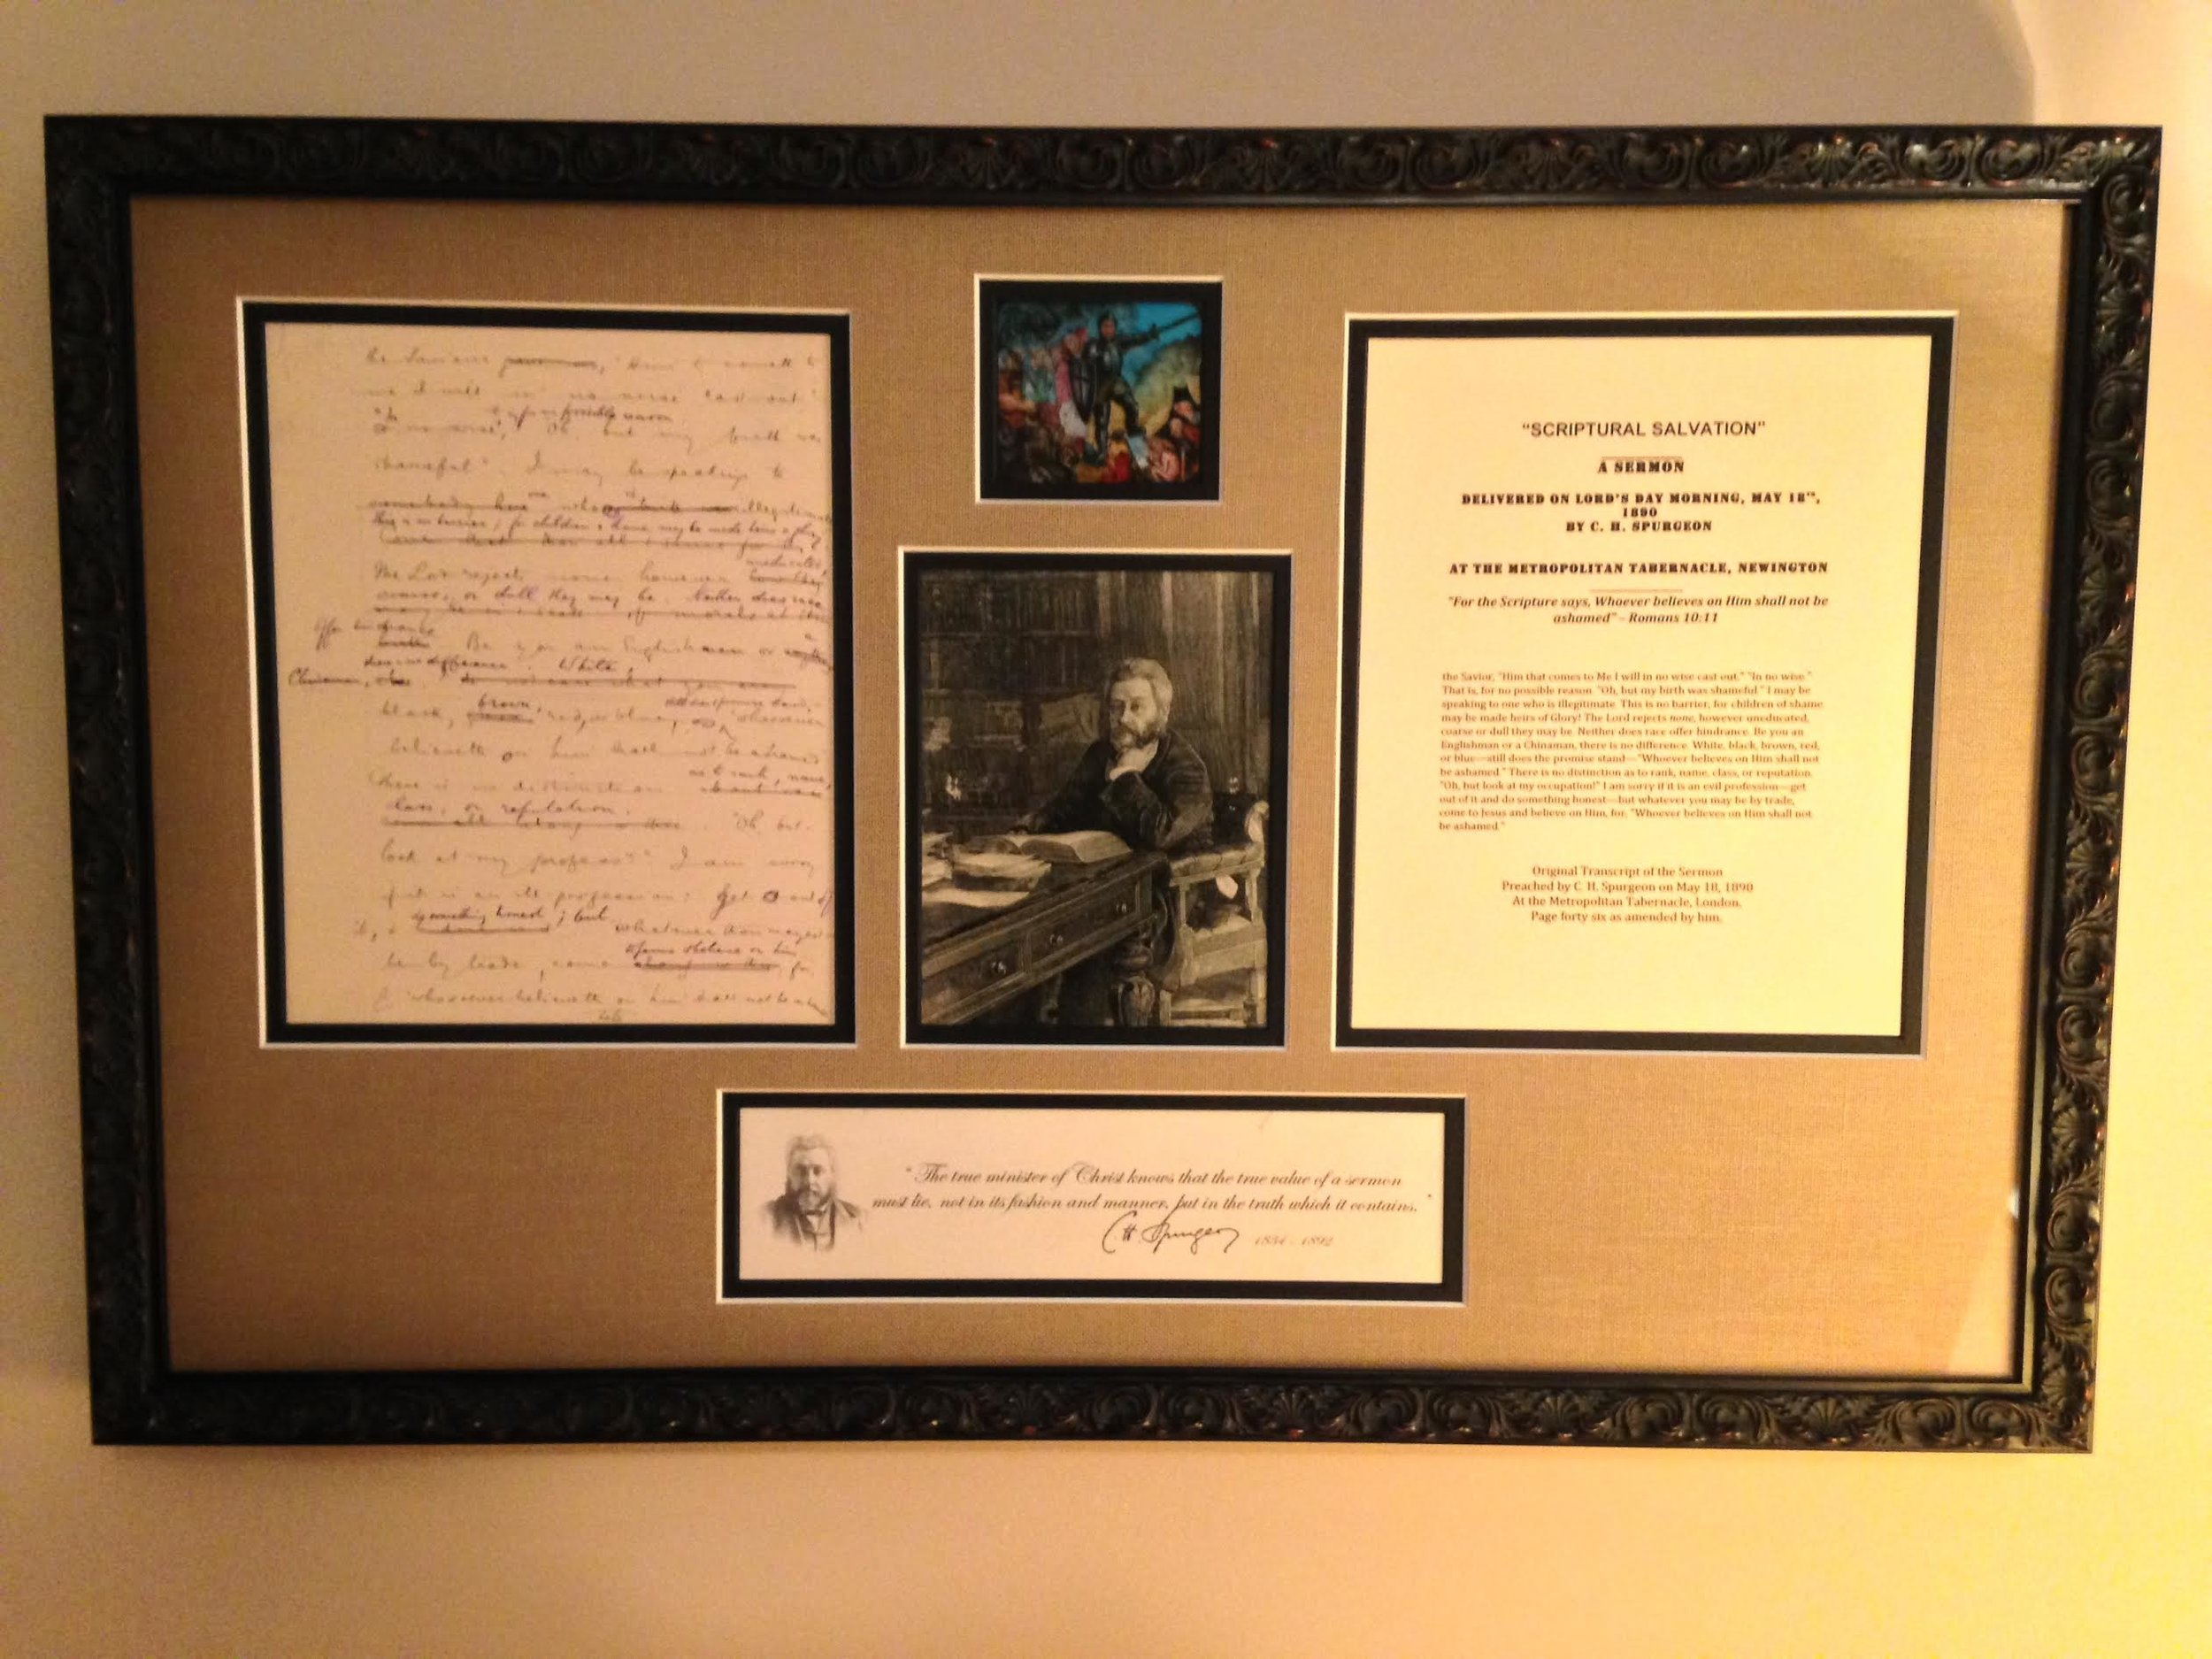 Framed nicely with a magic lantern slide and parchment. -